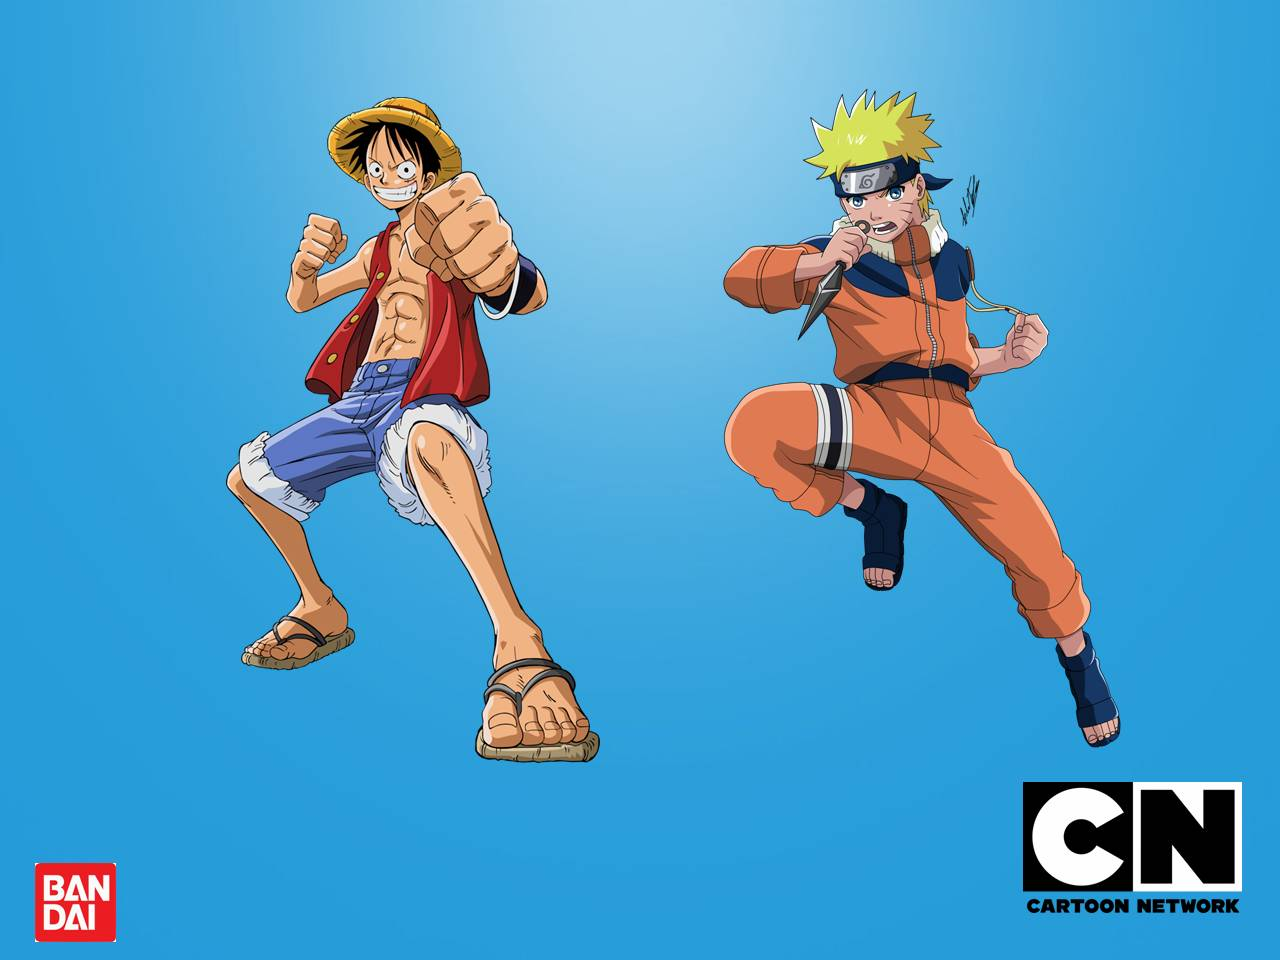 Image one piece and naruto on dragon ball wiki - Dragon ball one piece ...